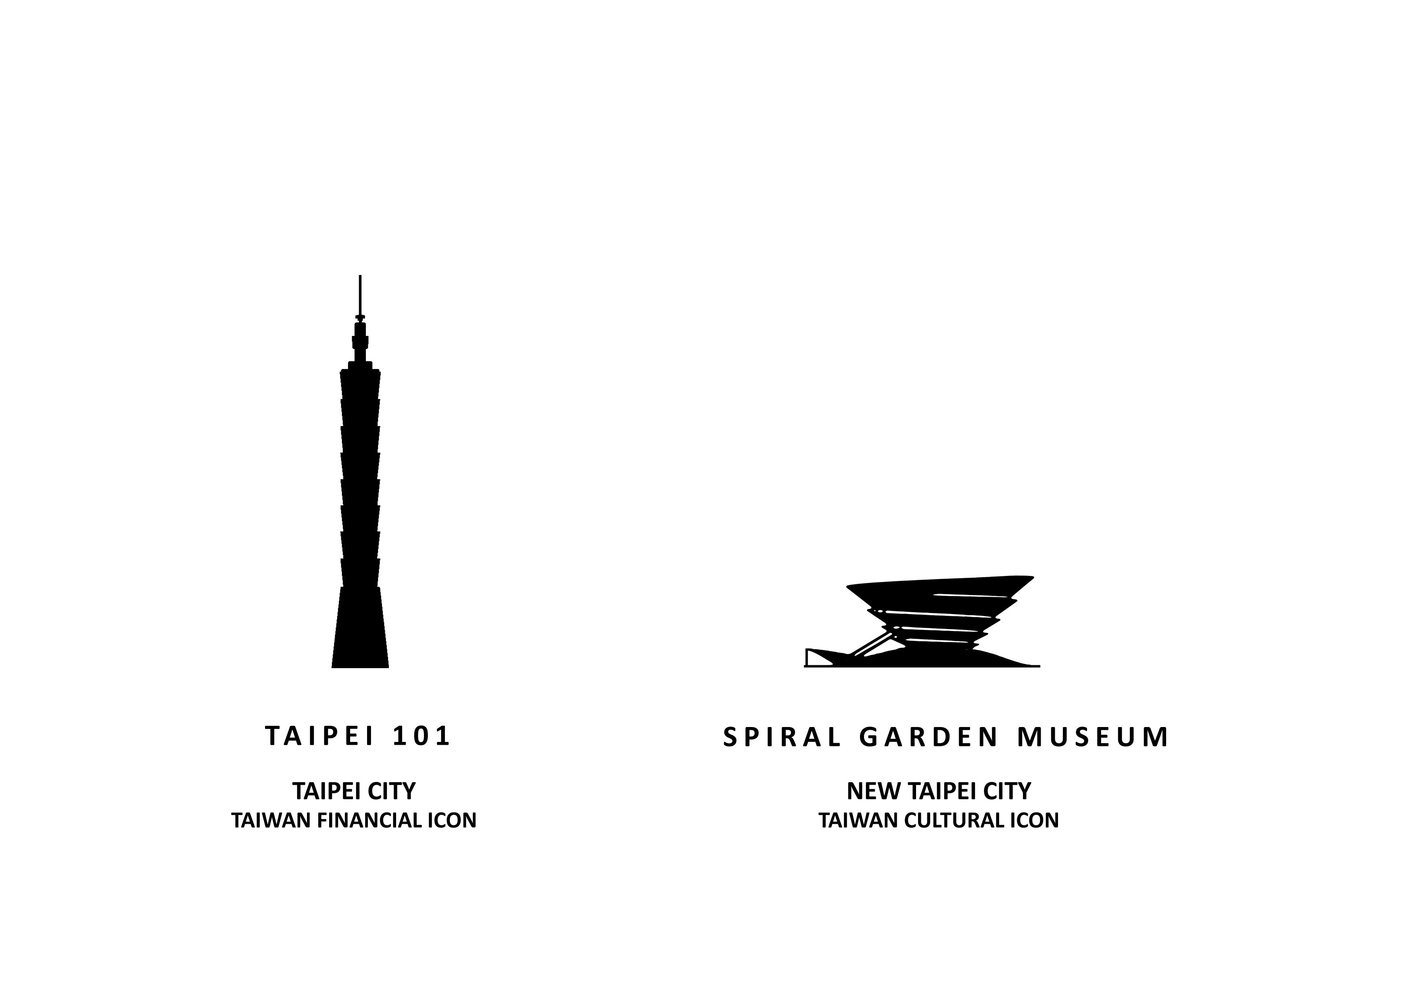 medium resolution of new taipei city museum of art competition proposal influx studio icon concept diagram